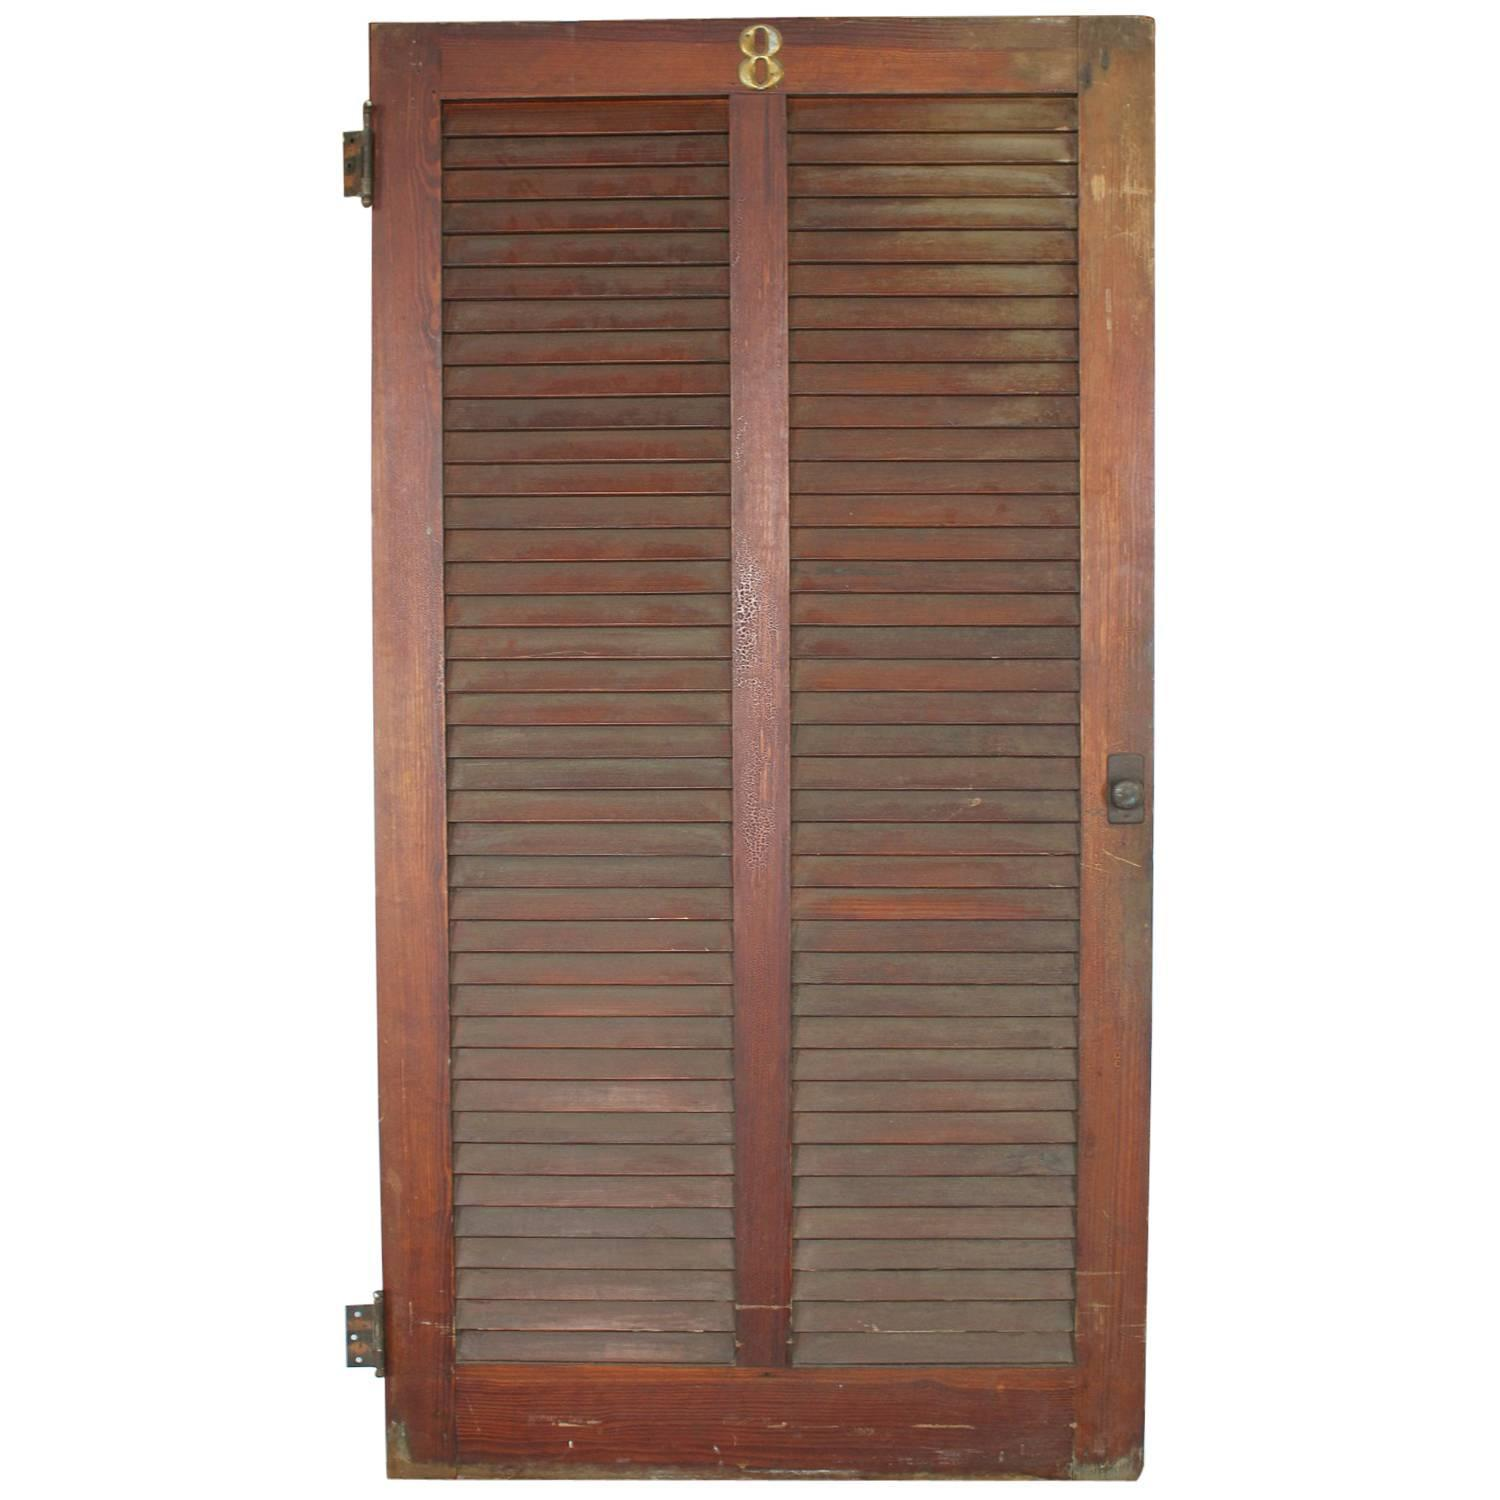 Antique american sport club locker wood doors for sale at for Wood lockers with doors